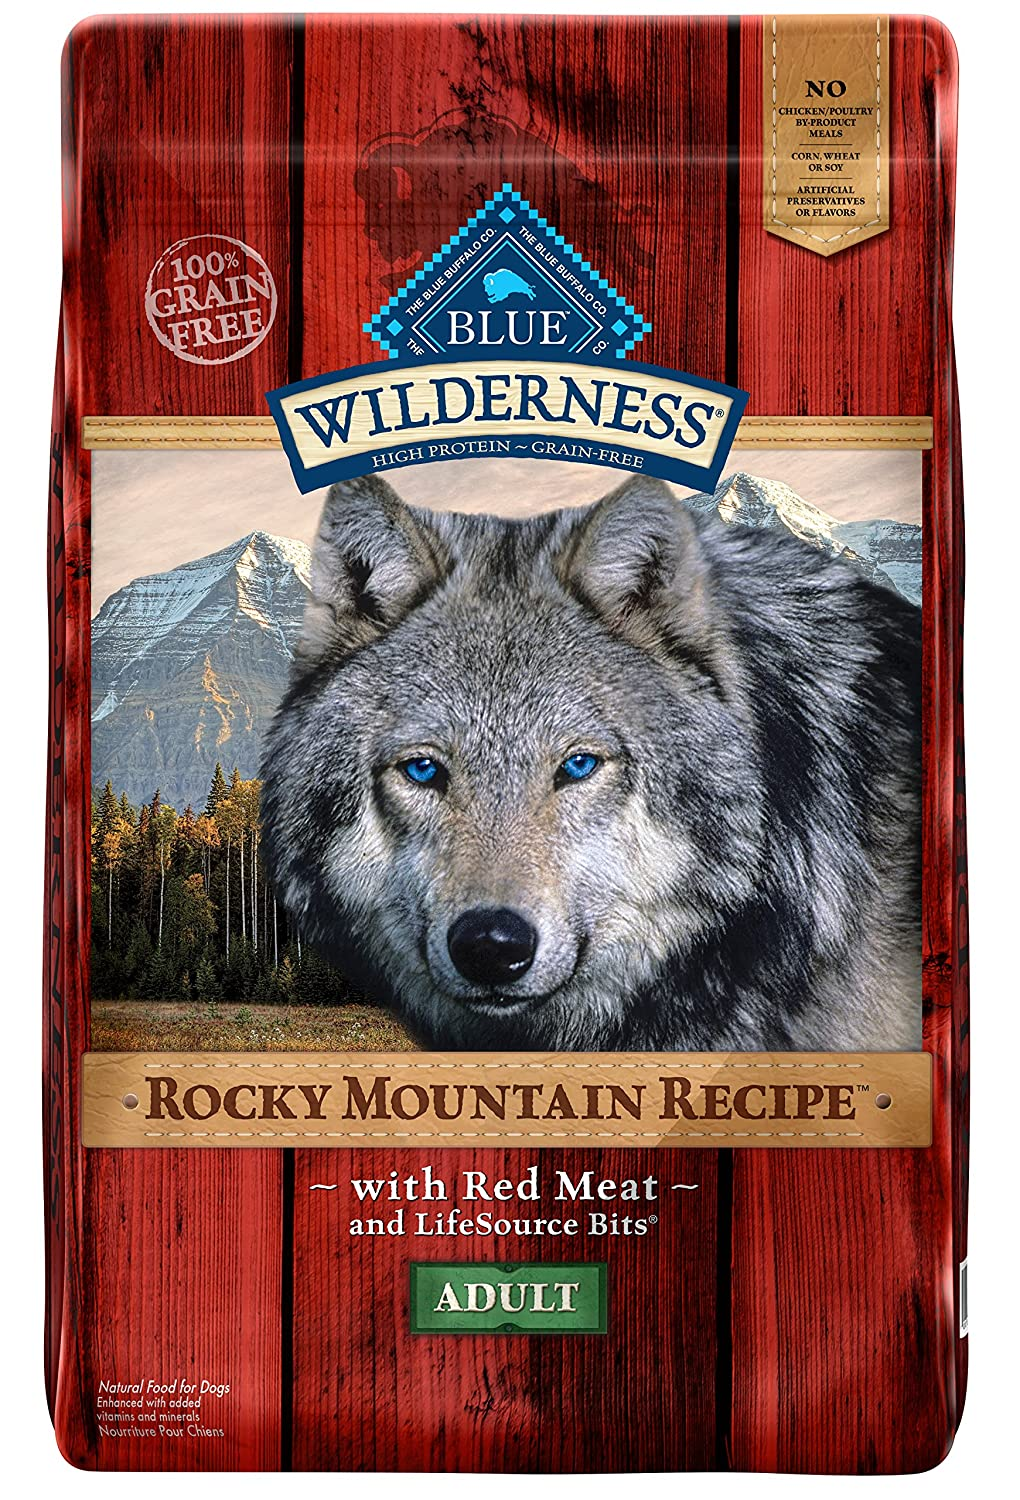 Blue Wilderness Rocky Mountain Recipe High-Protein Grain-Free Adult Dry Dog Food